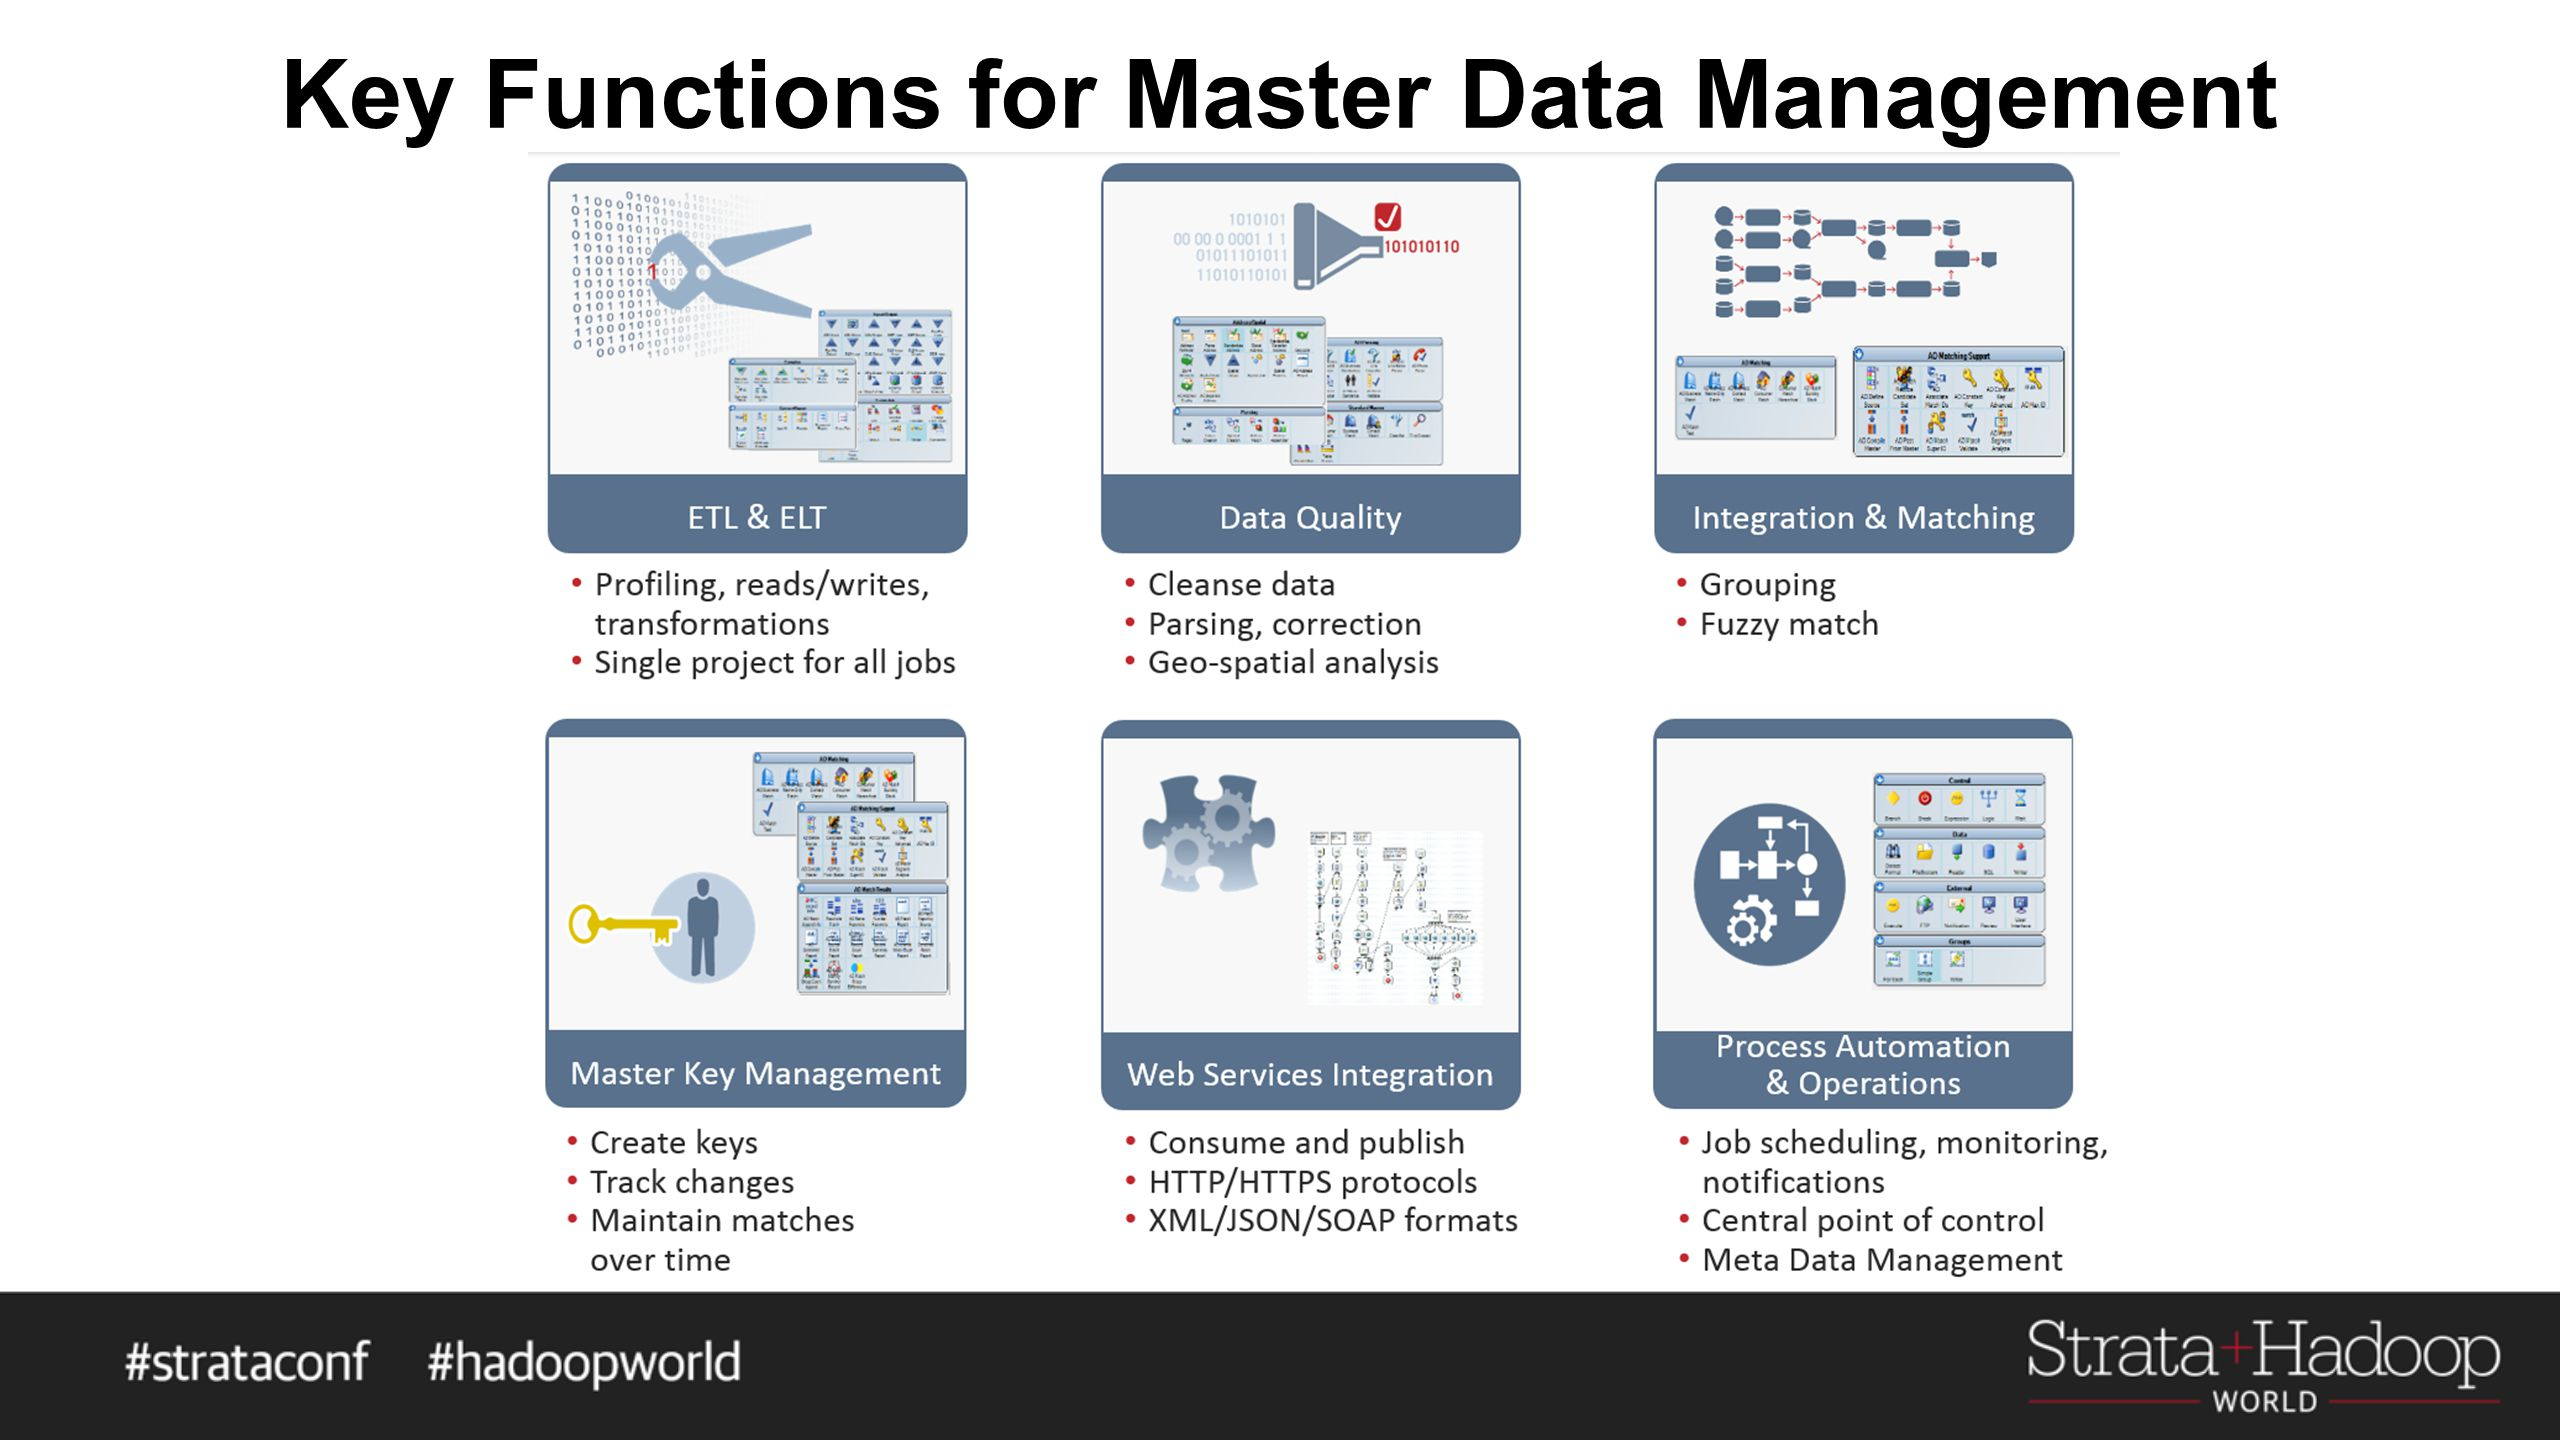 Key Functions for Master Data Management